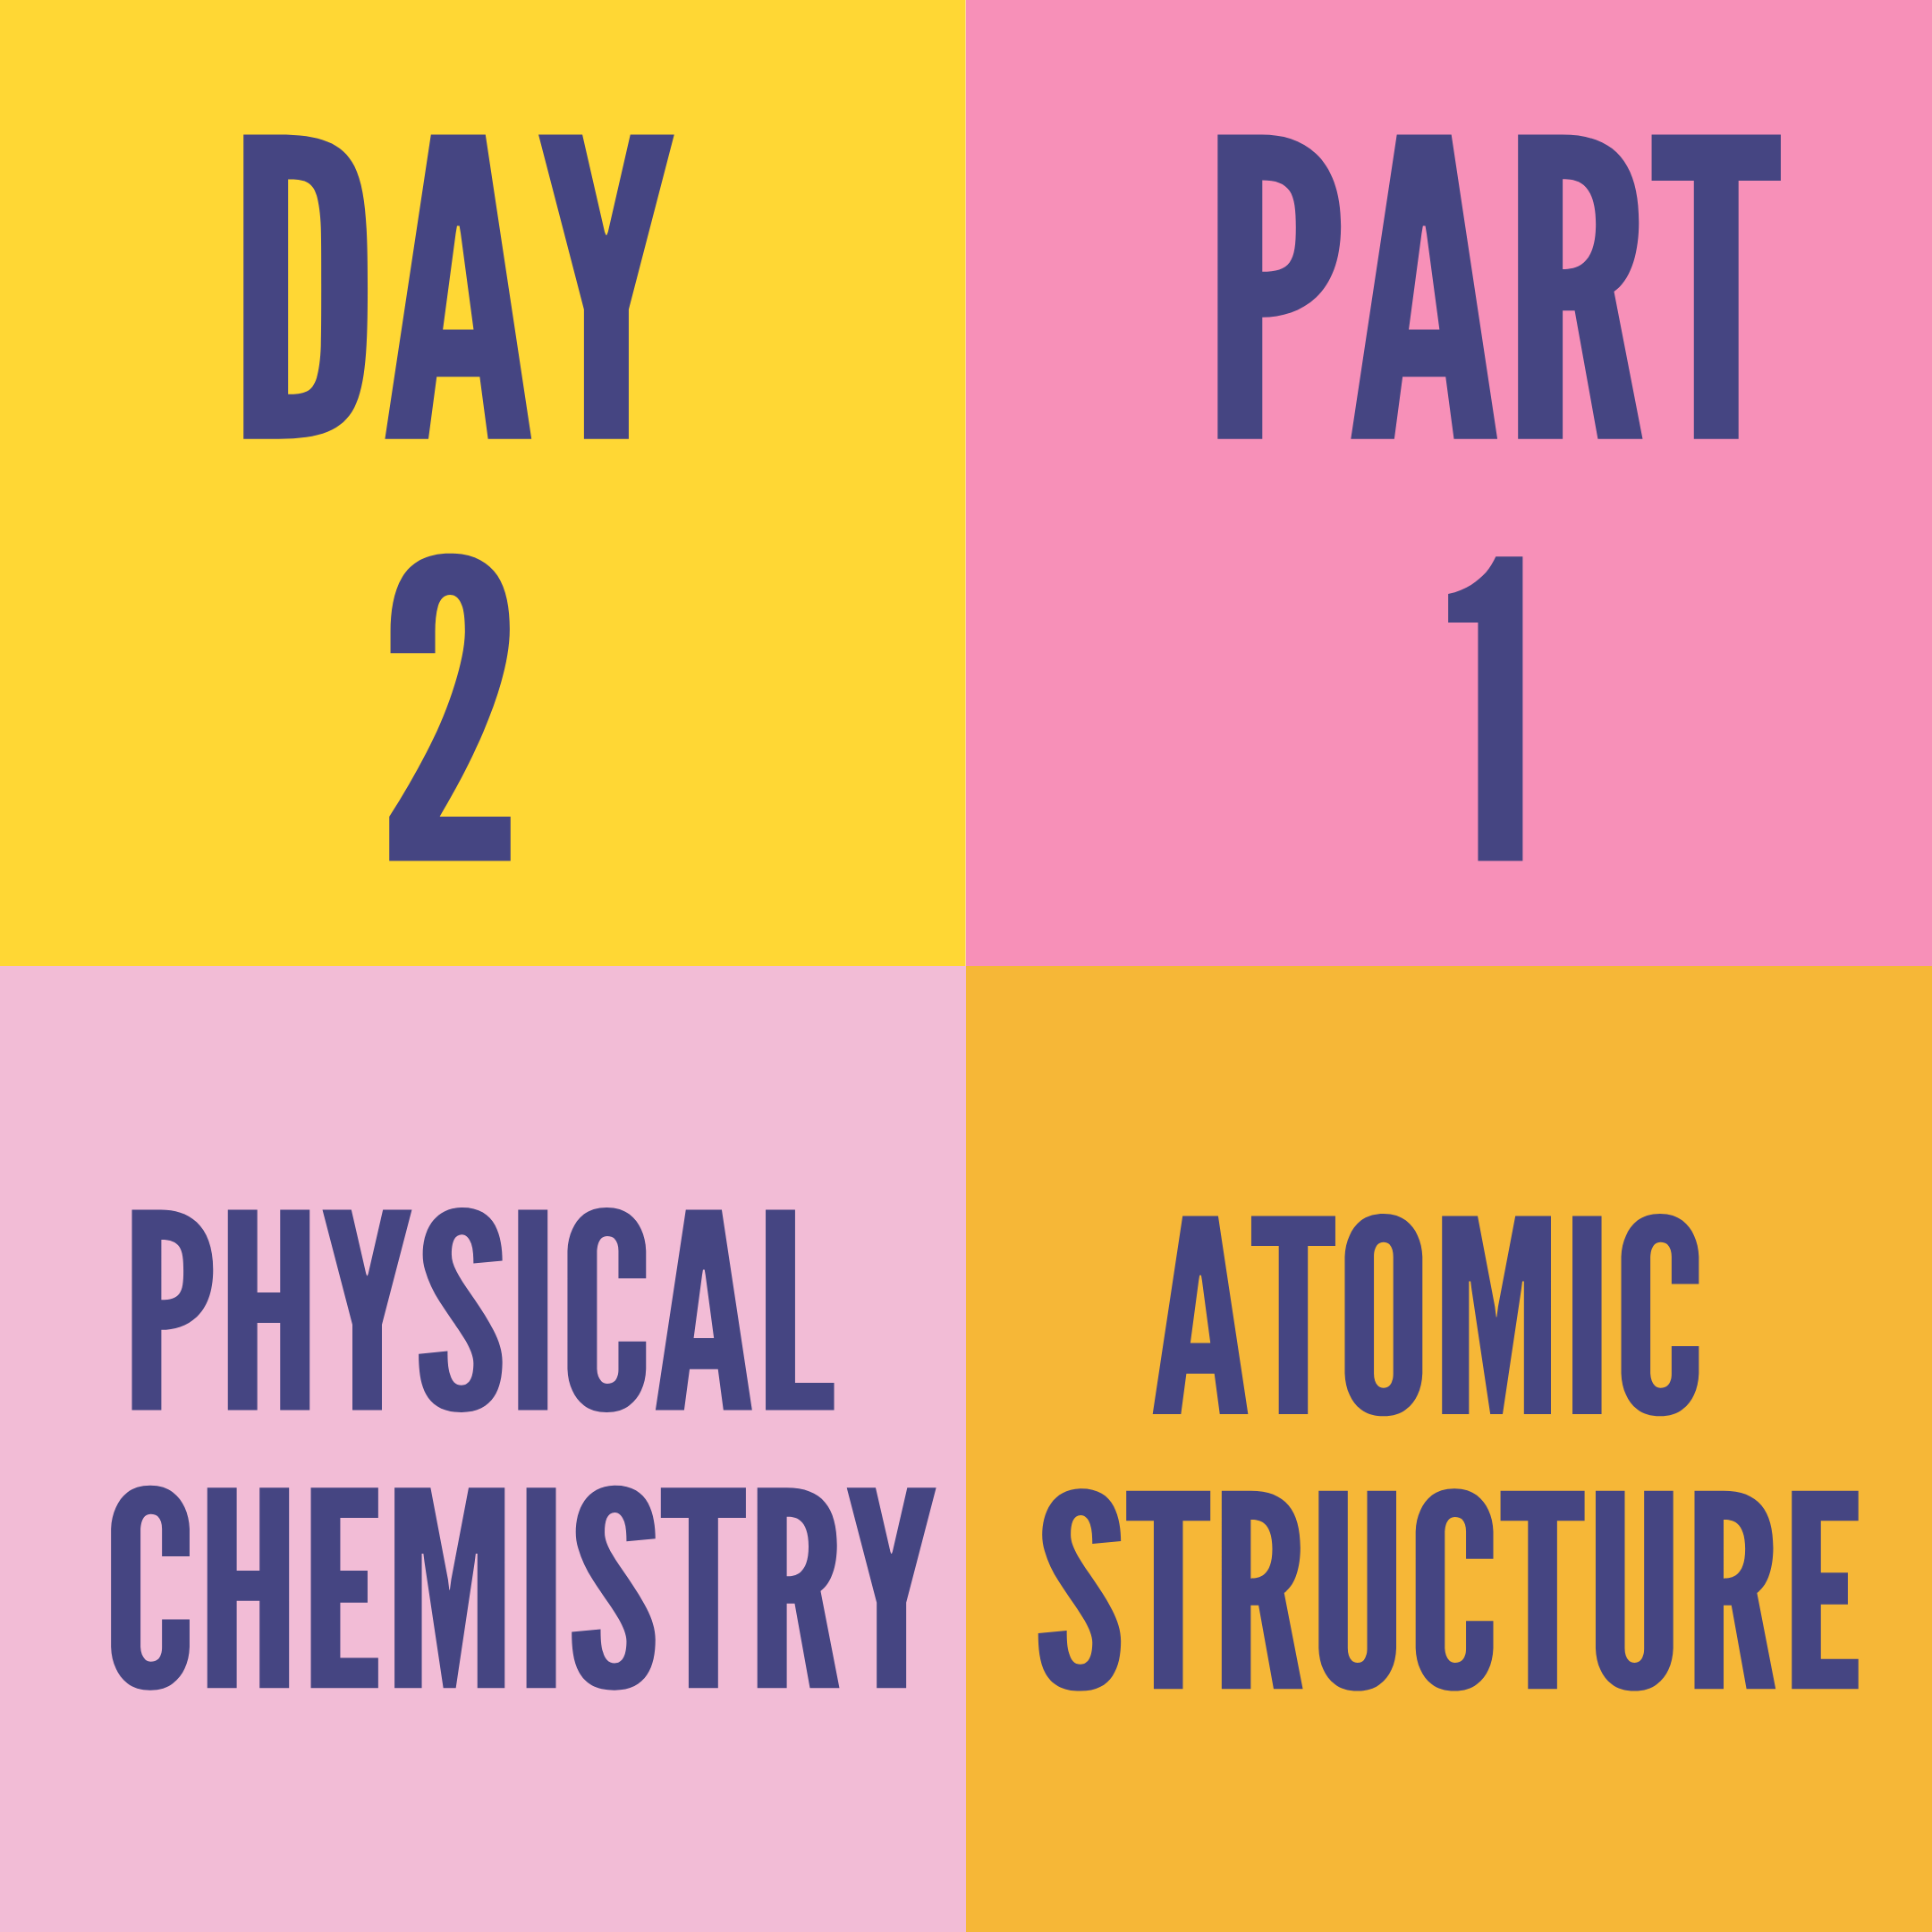 DAY-2 PART-1 ATOMIC STRUCTURE